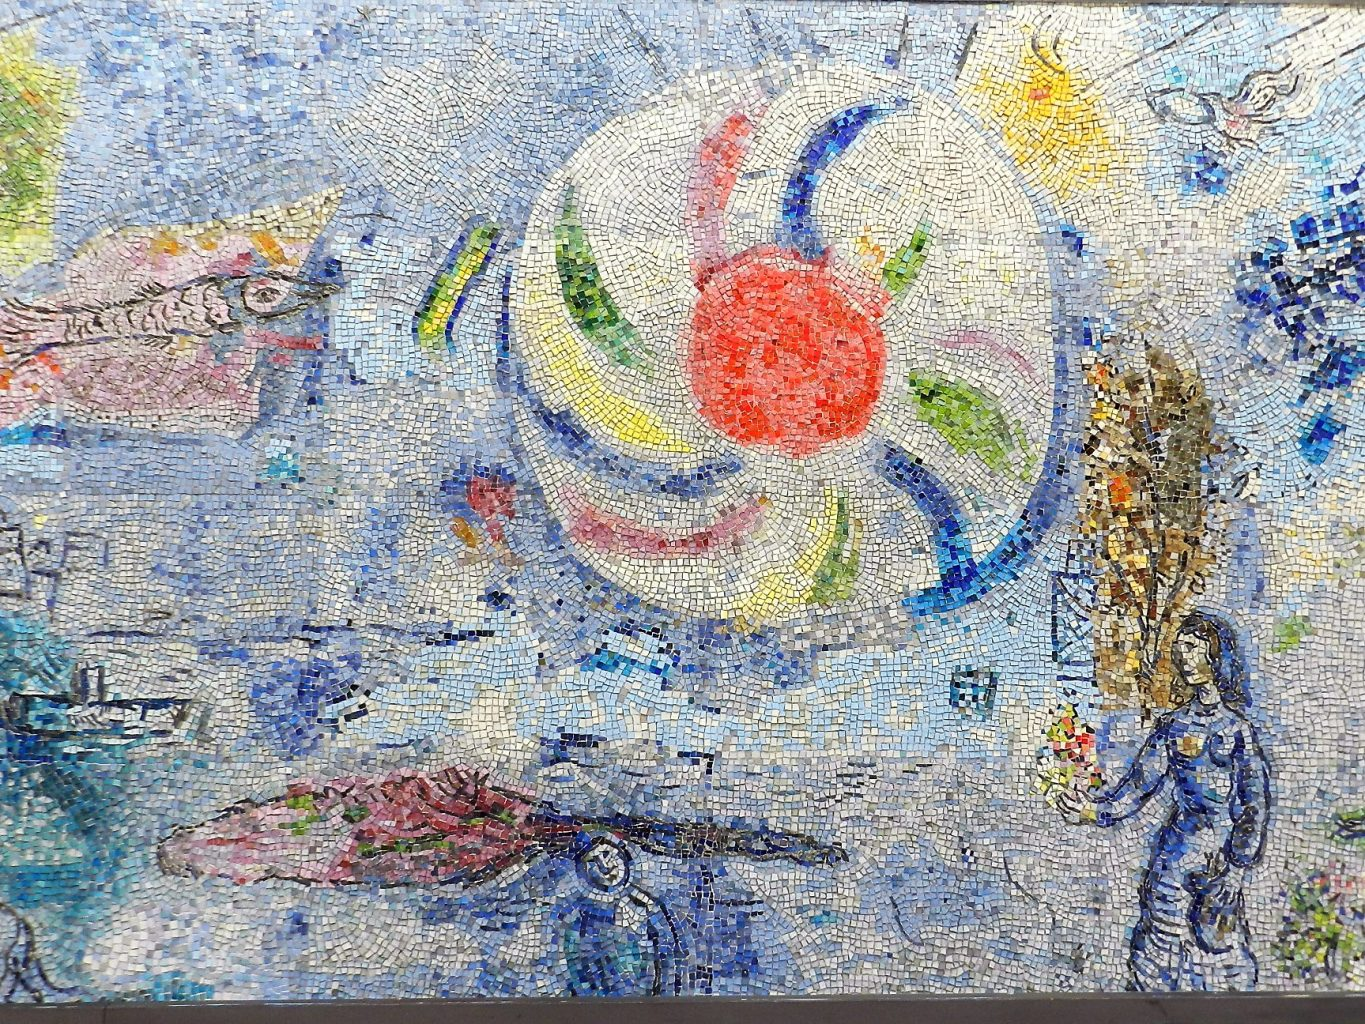 Marc Chagall's Four Seasons mosaic_ sun and background.